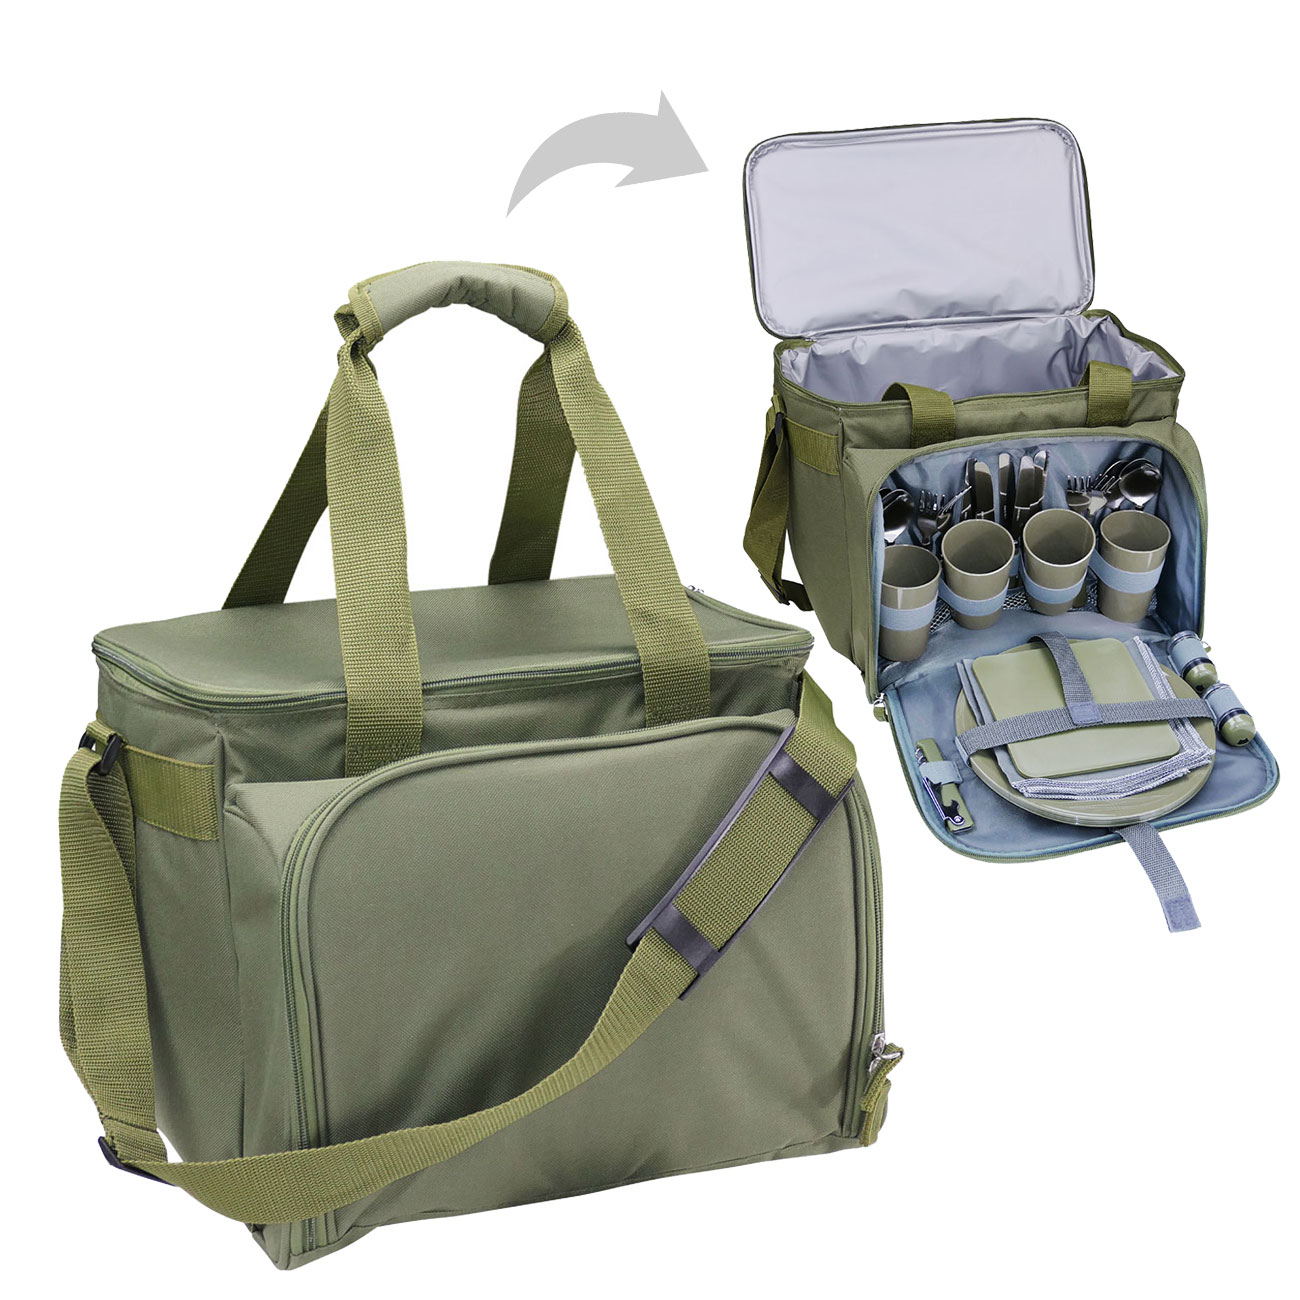 Commando Industries Kühltasche Cooler Bag 20 Liter mit Picknick-Set oliv 0